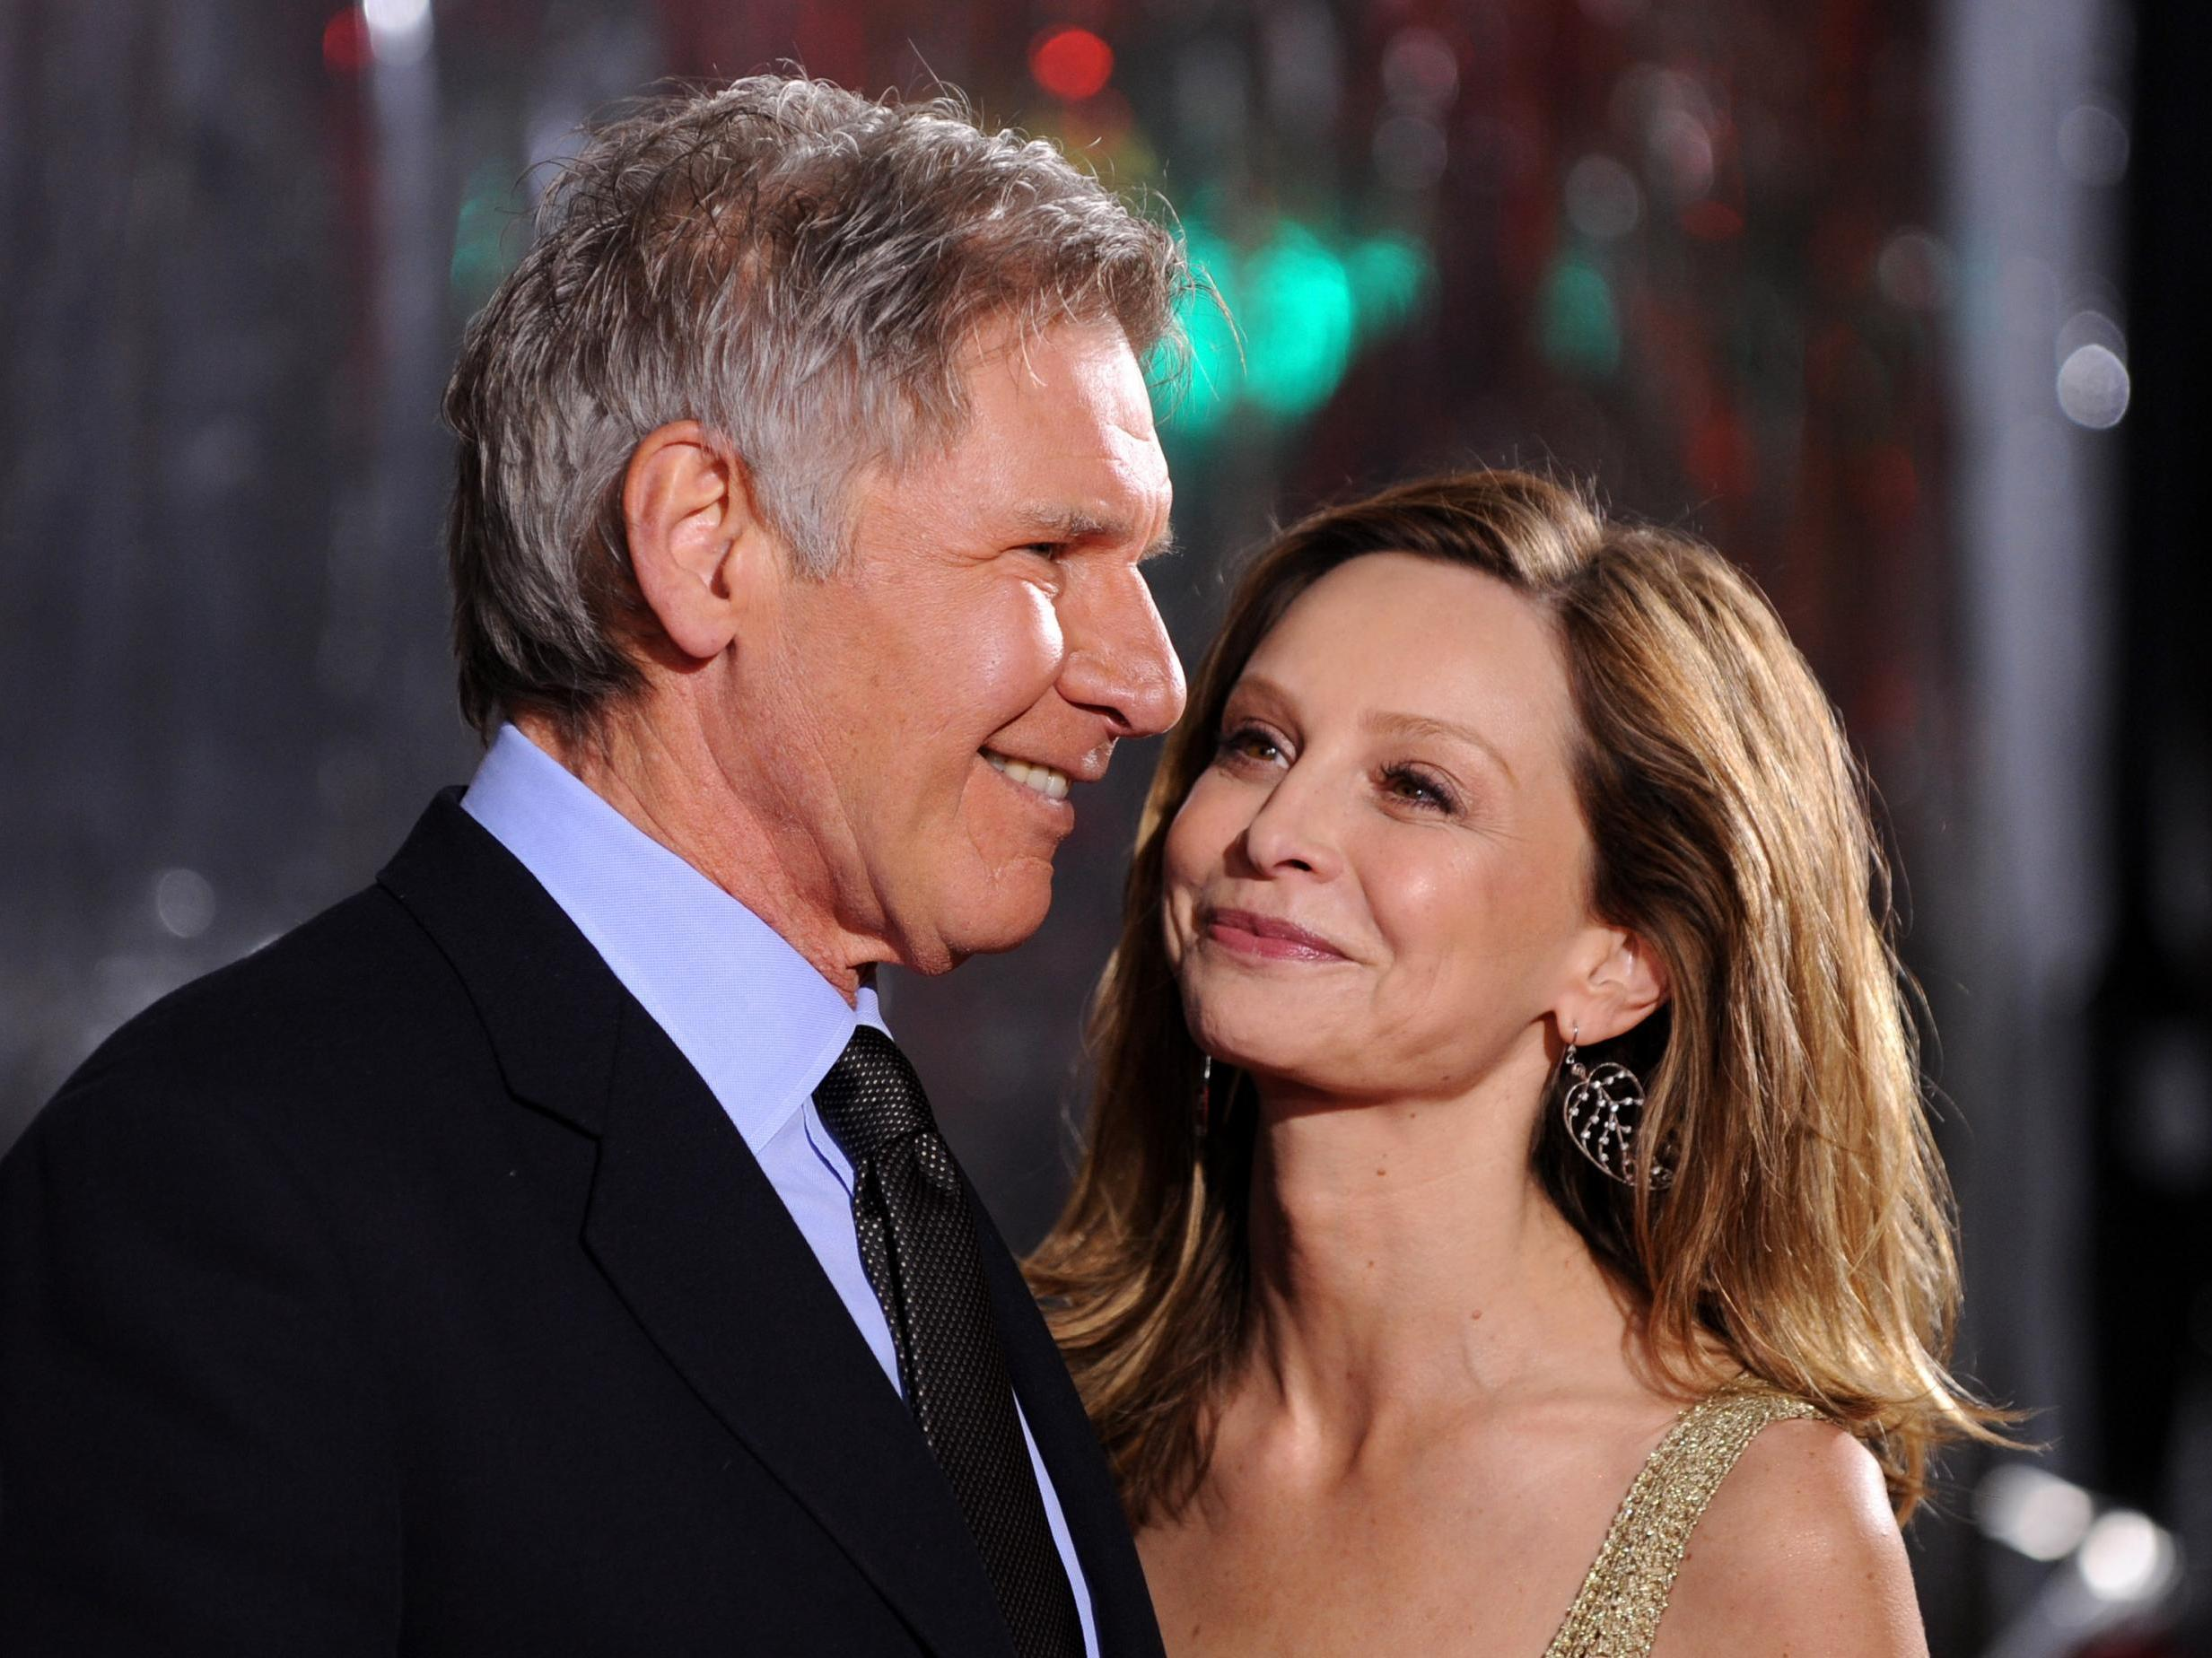 Harrison Ford shares top tip for successful marriage to Calista Flockhart